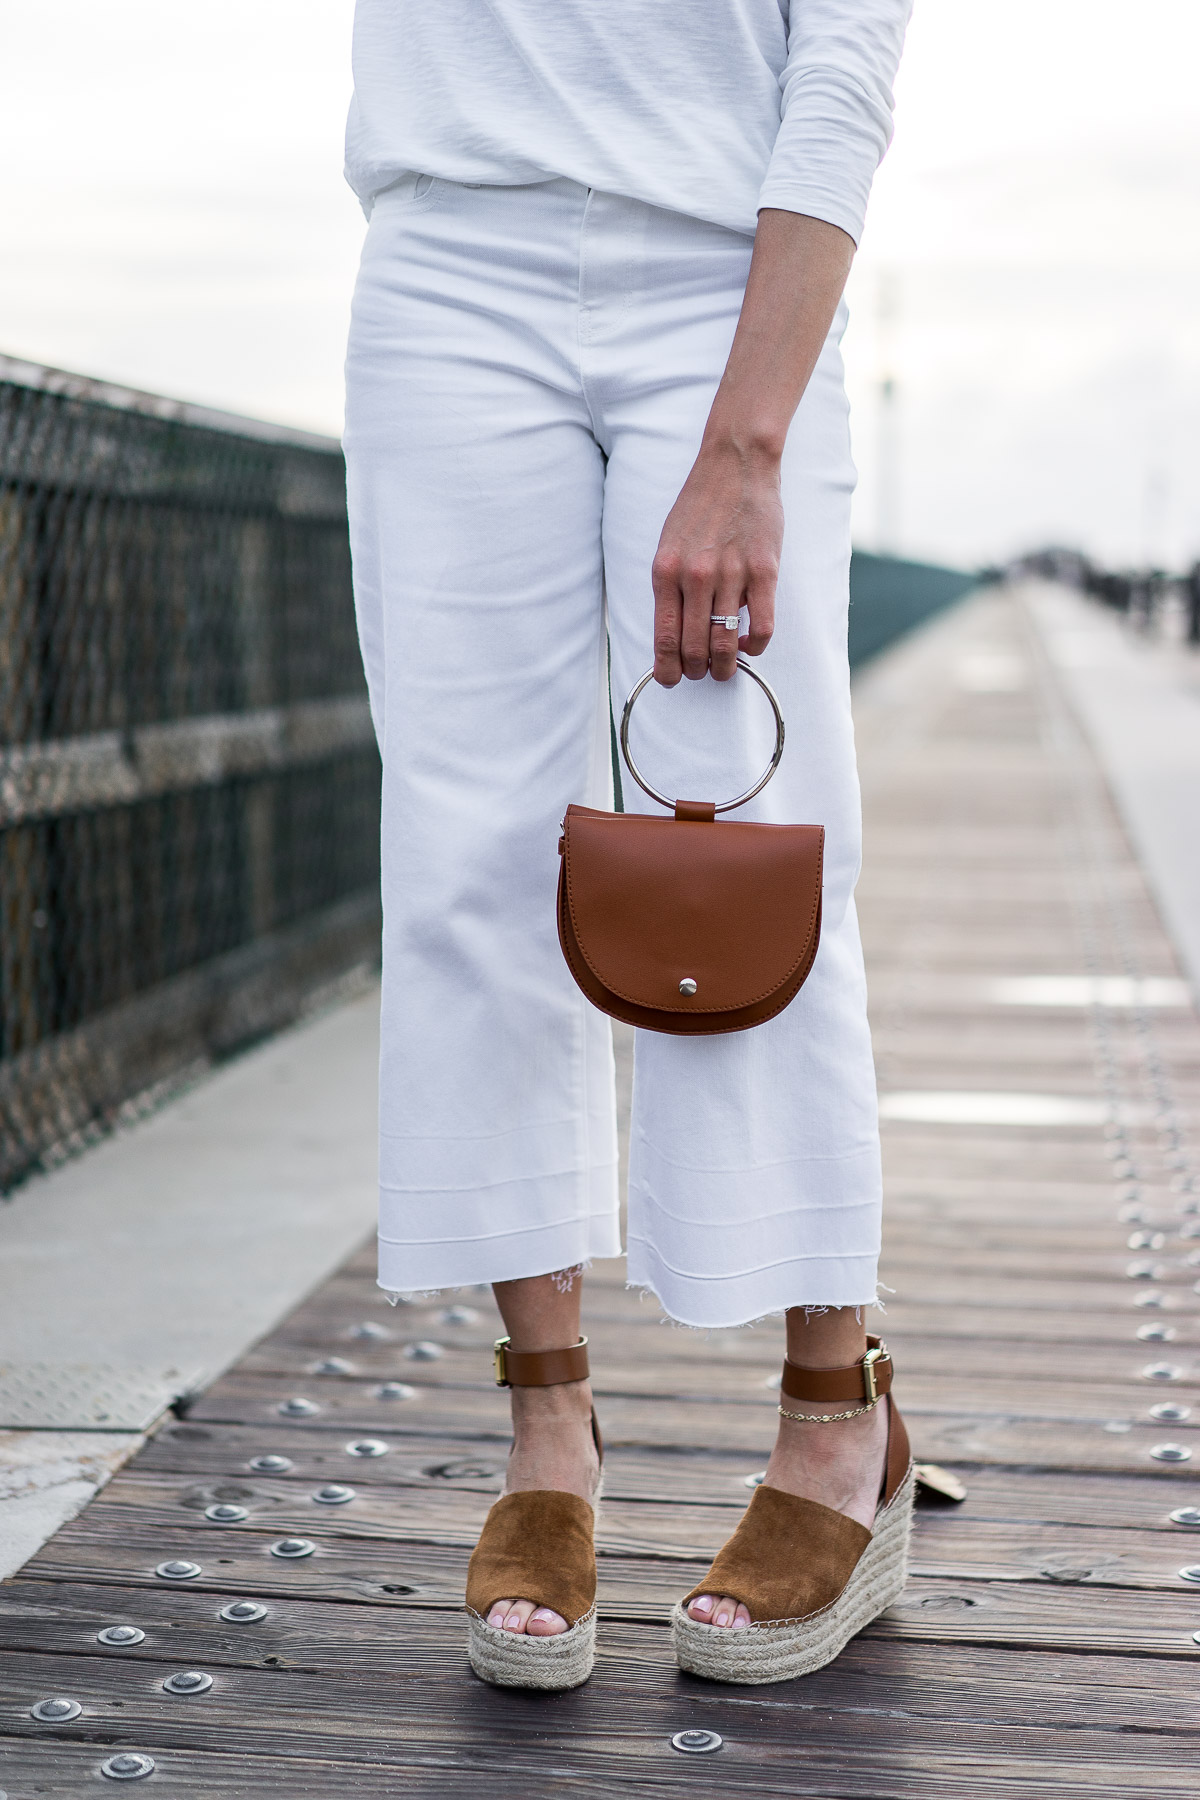 Old Navy's Spring collection includes high waist wide leg white ankle jeans as worn by blogger Amanda from A Glam Lifestyle